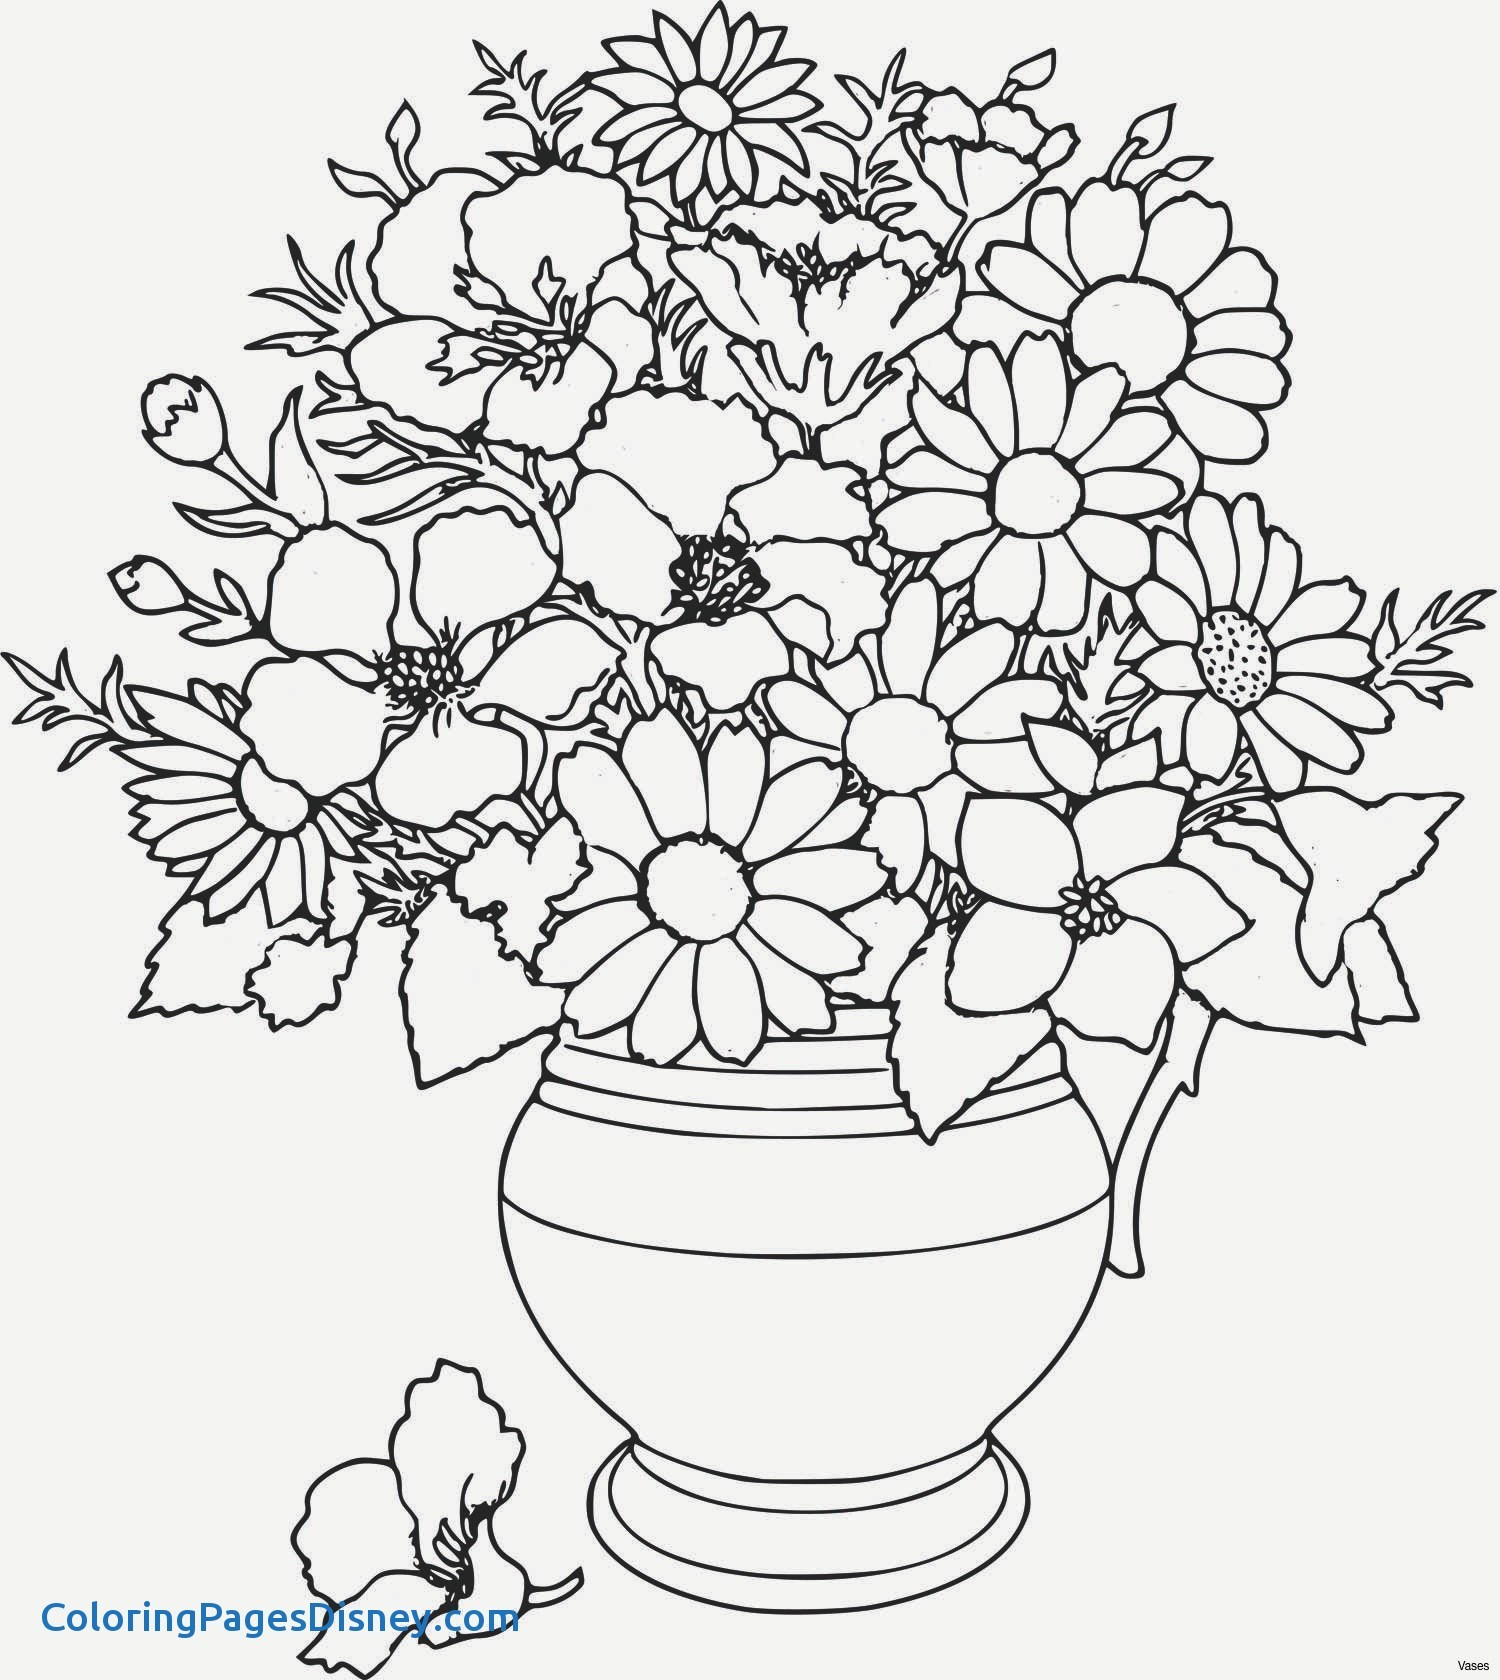 1500x1680 Dahlia Coloring Pages Lovely Free Cool Printable Coloring Page